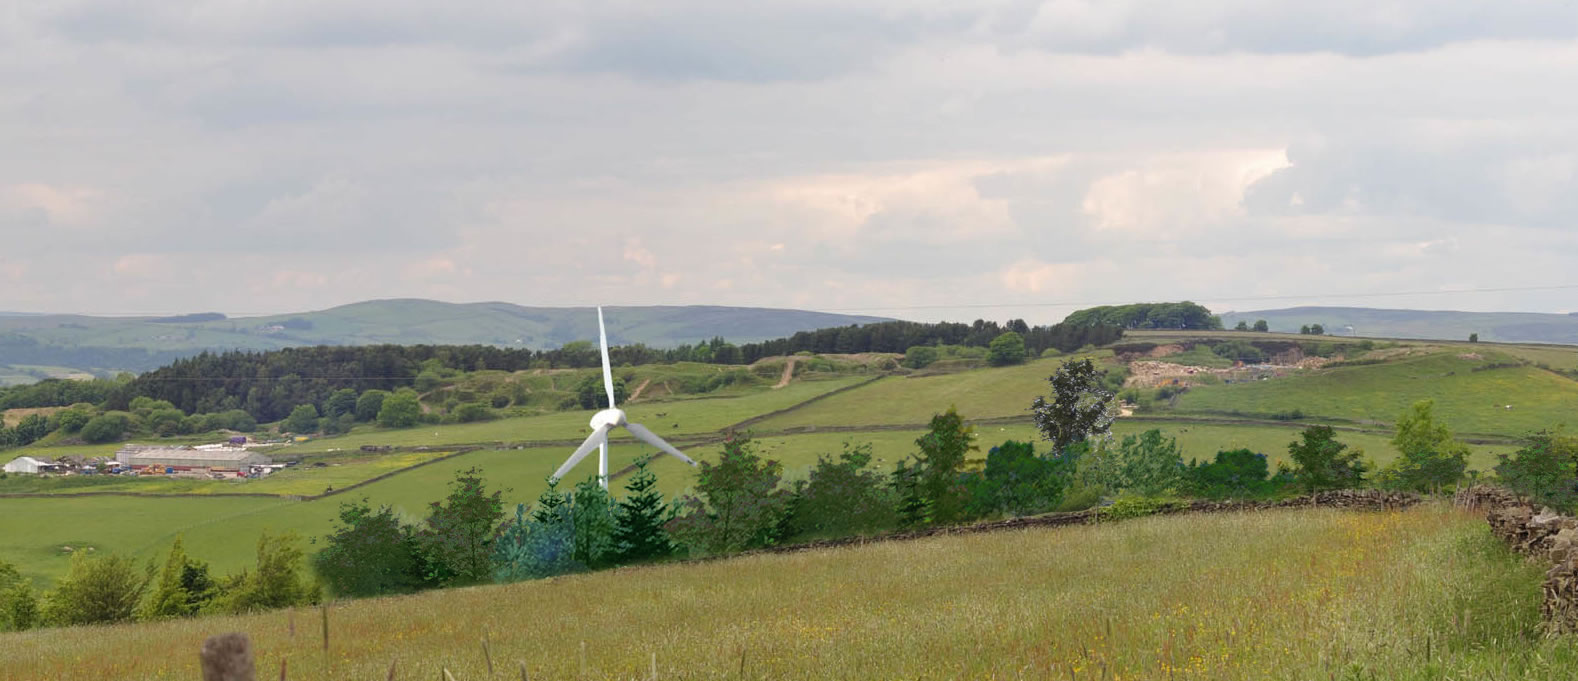 4 - https://www.galpinlandscape.co.uk/wp-content/uploads/2016/02/WIND-TURBINES-04_1920.jpg